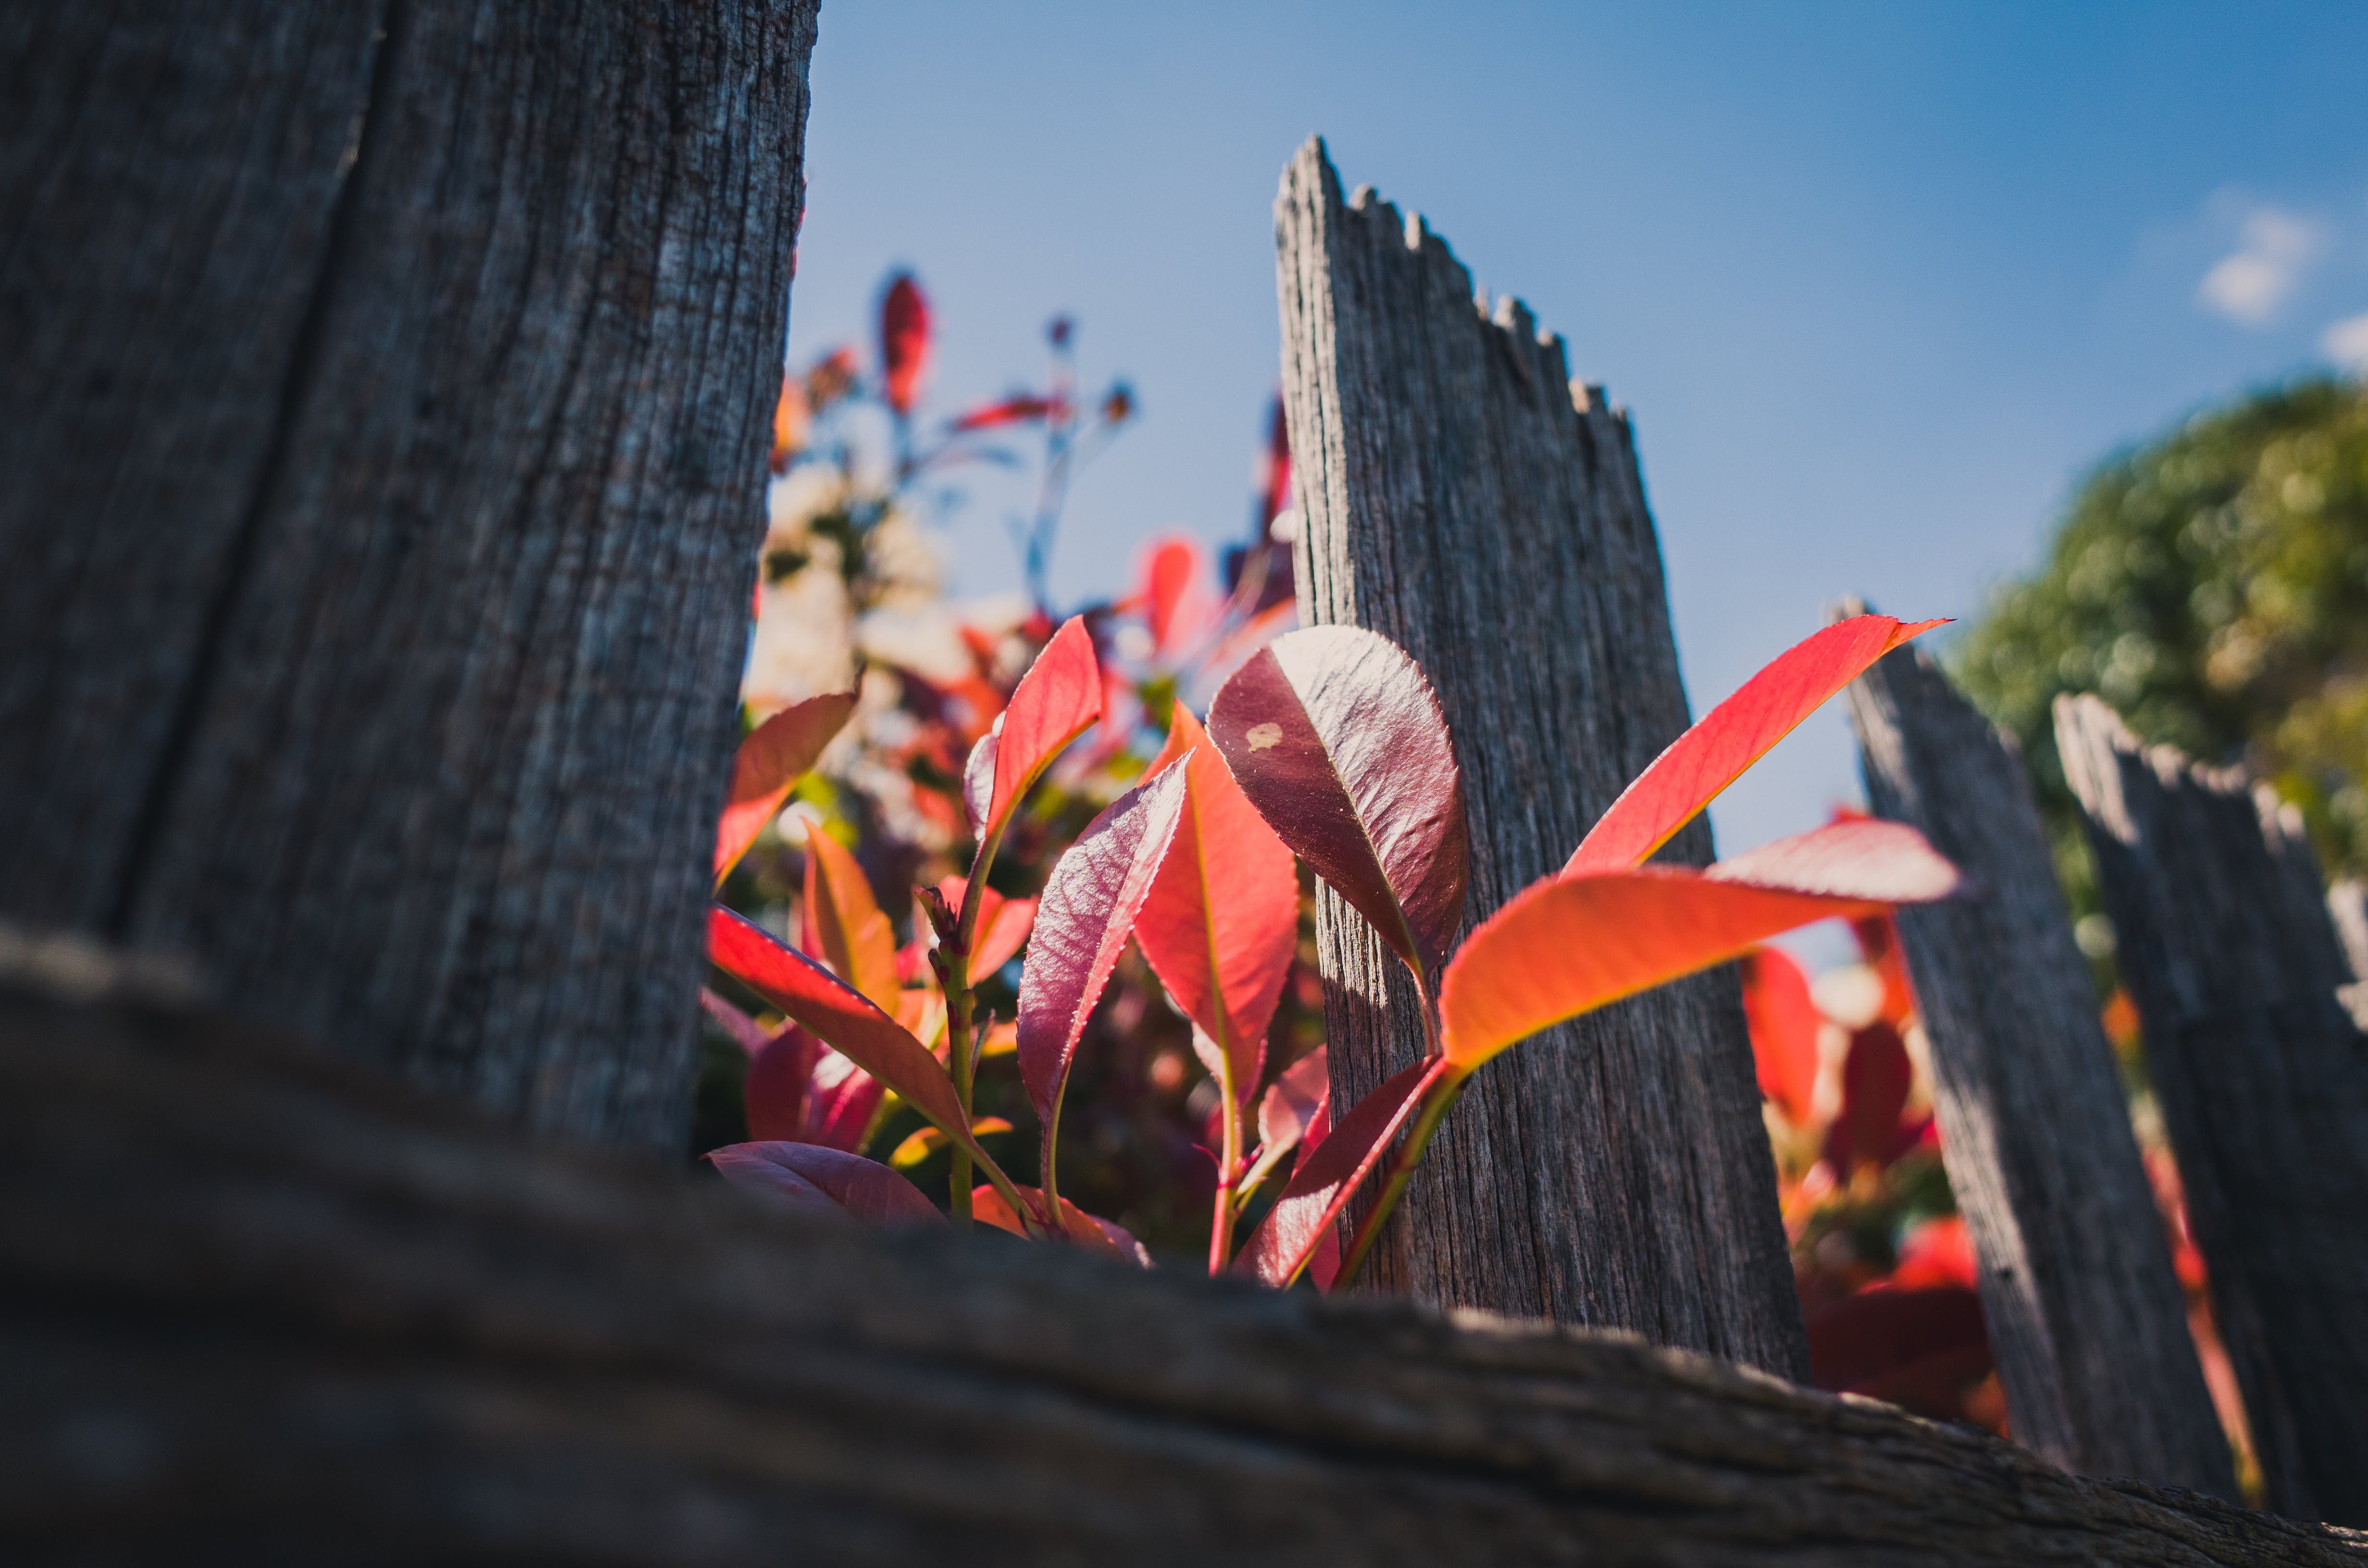 Low Angle Photo of Red Leafed Plants